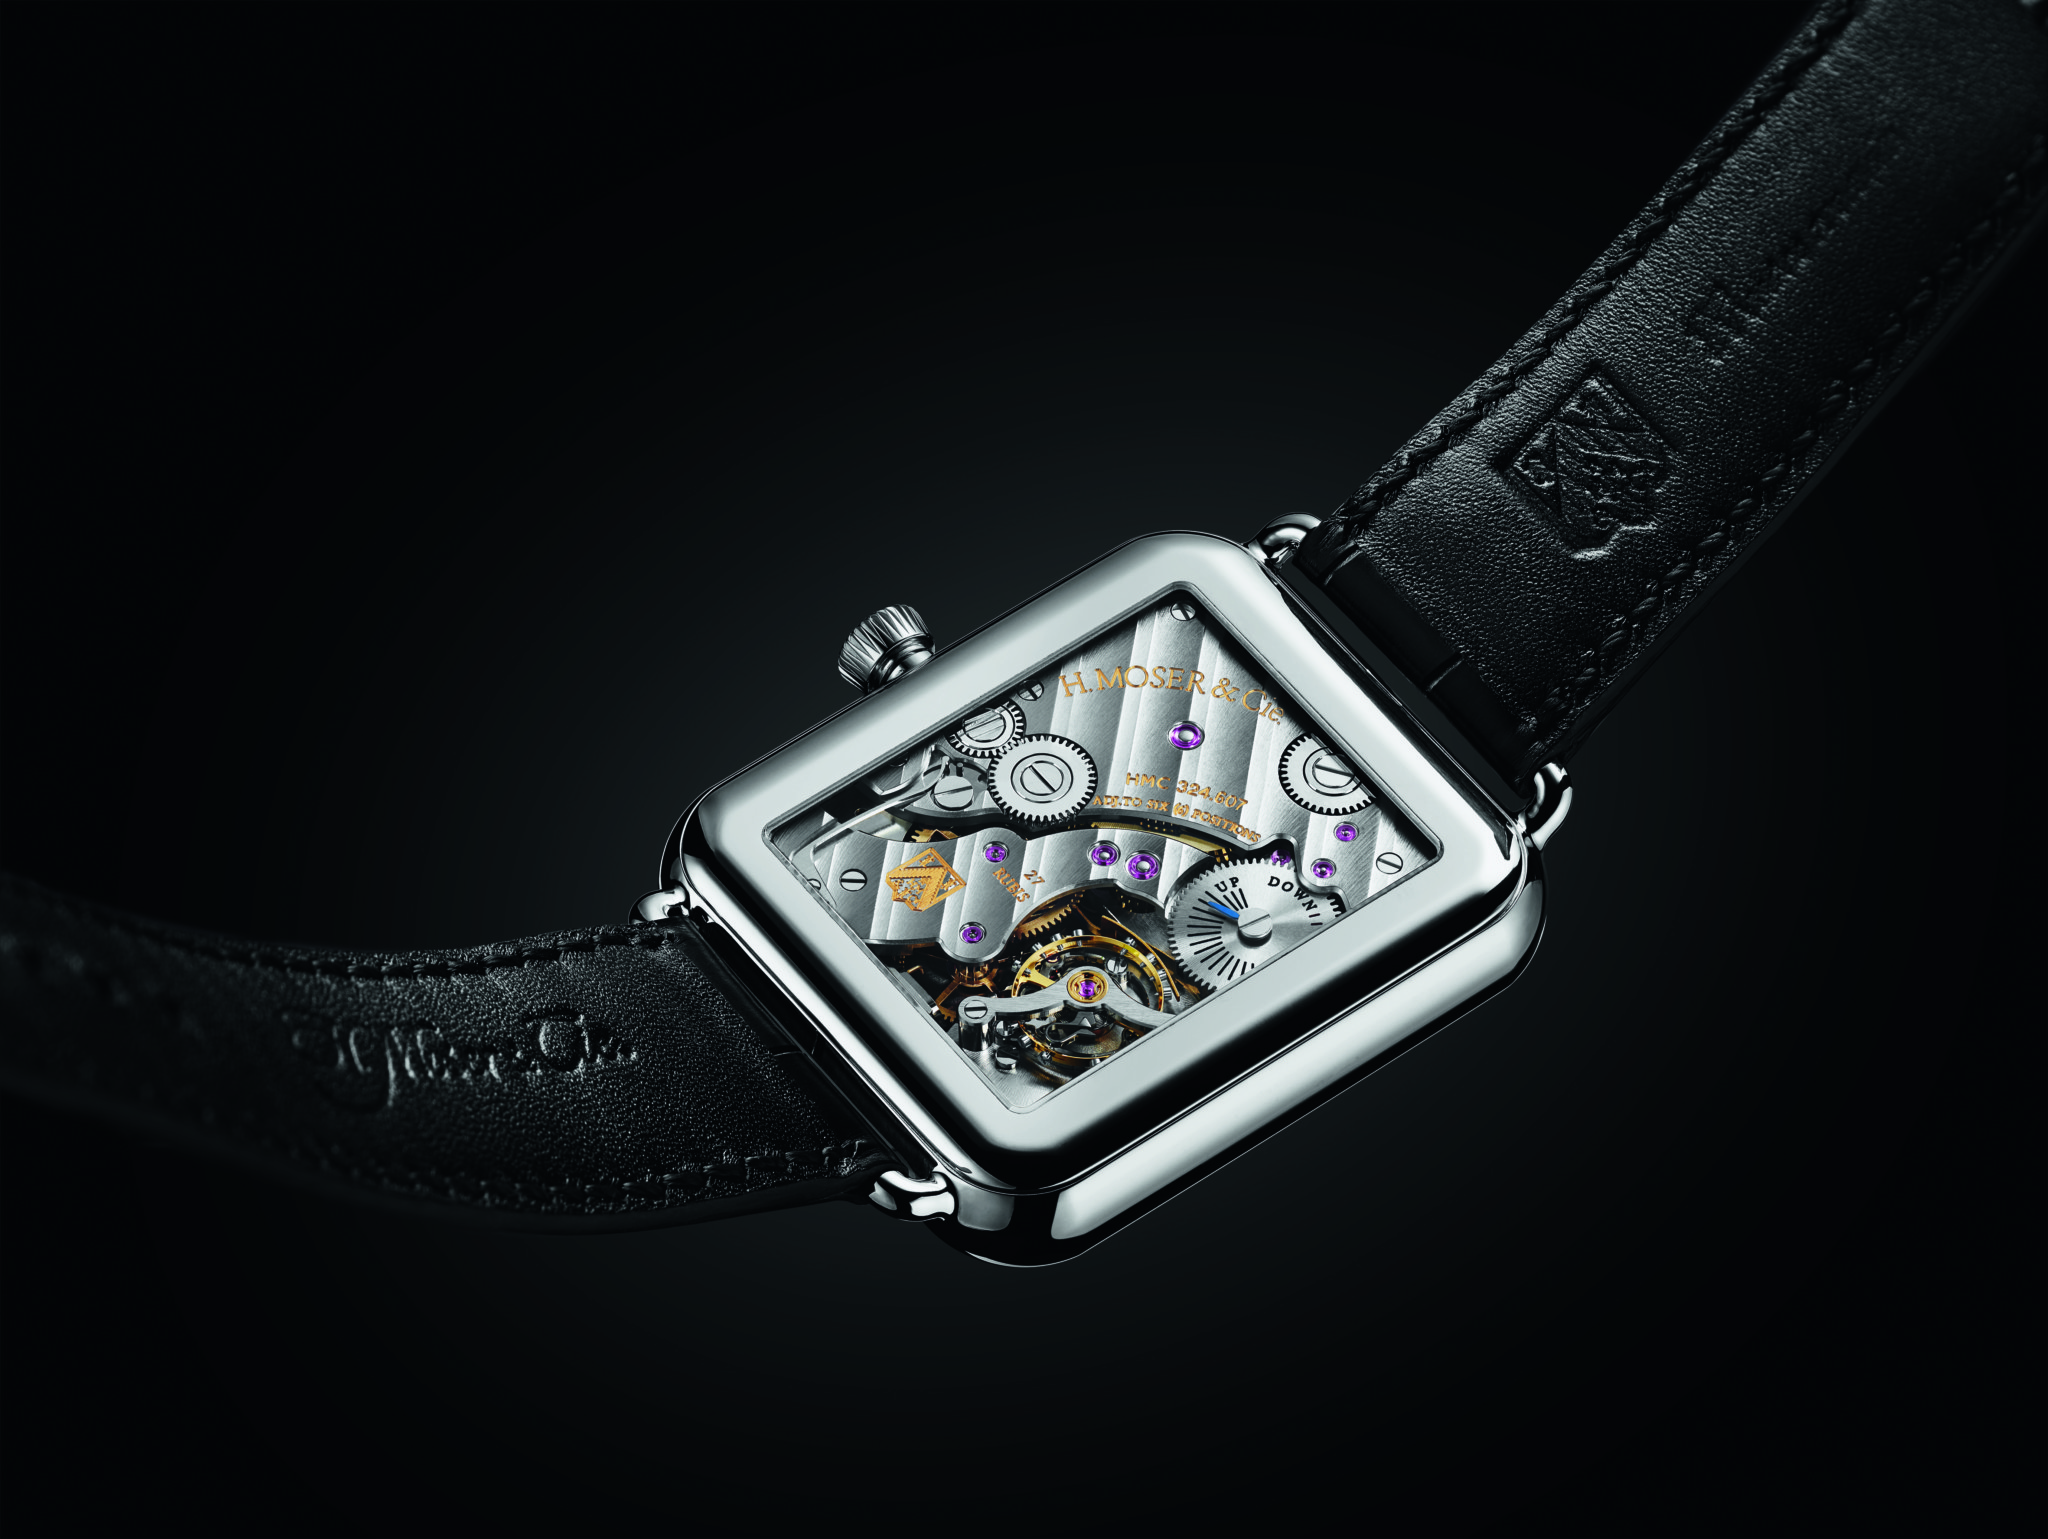 Swiss Alp Watch